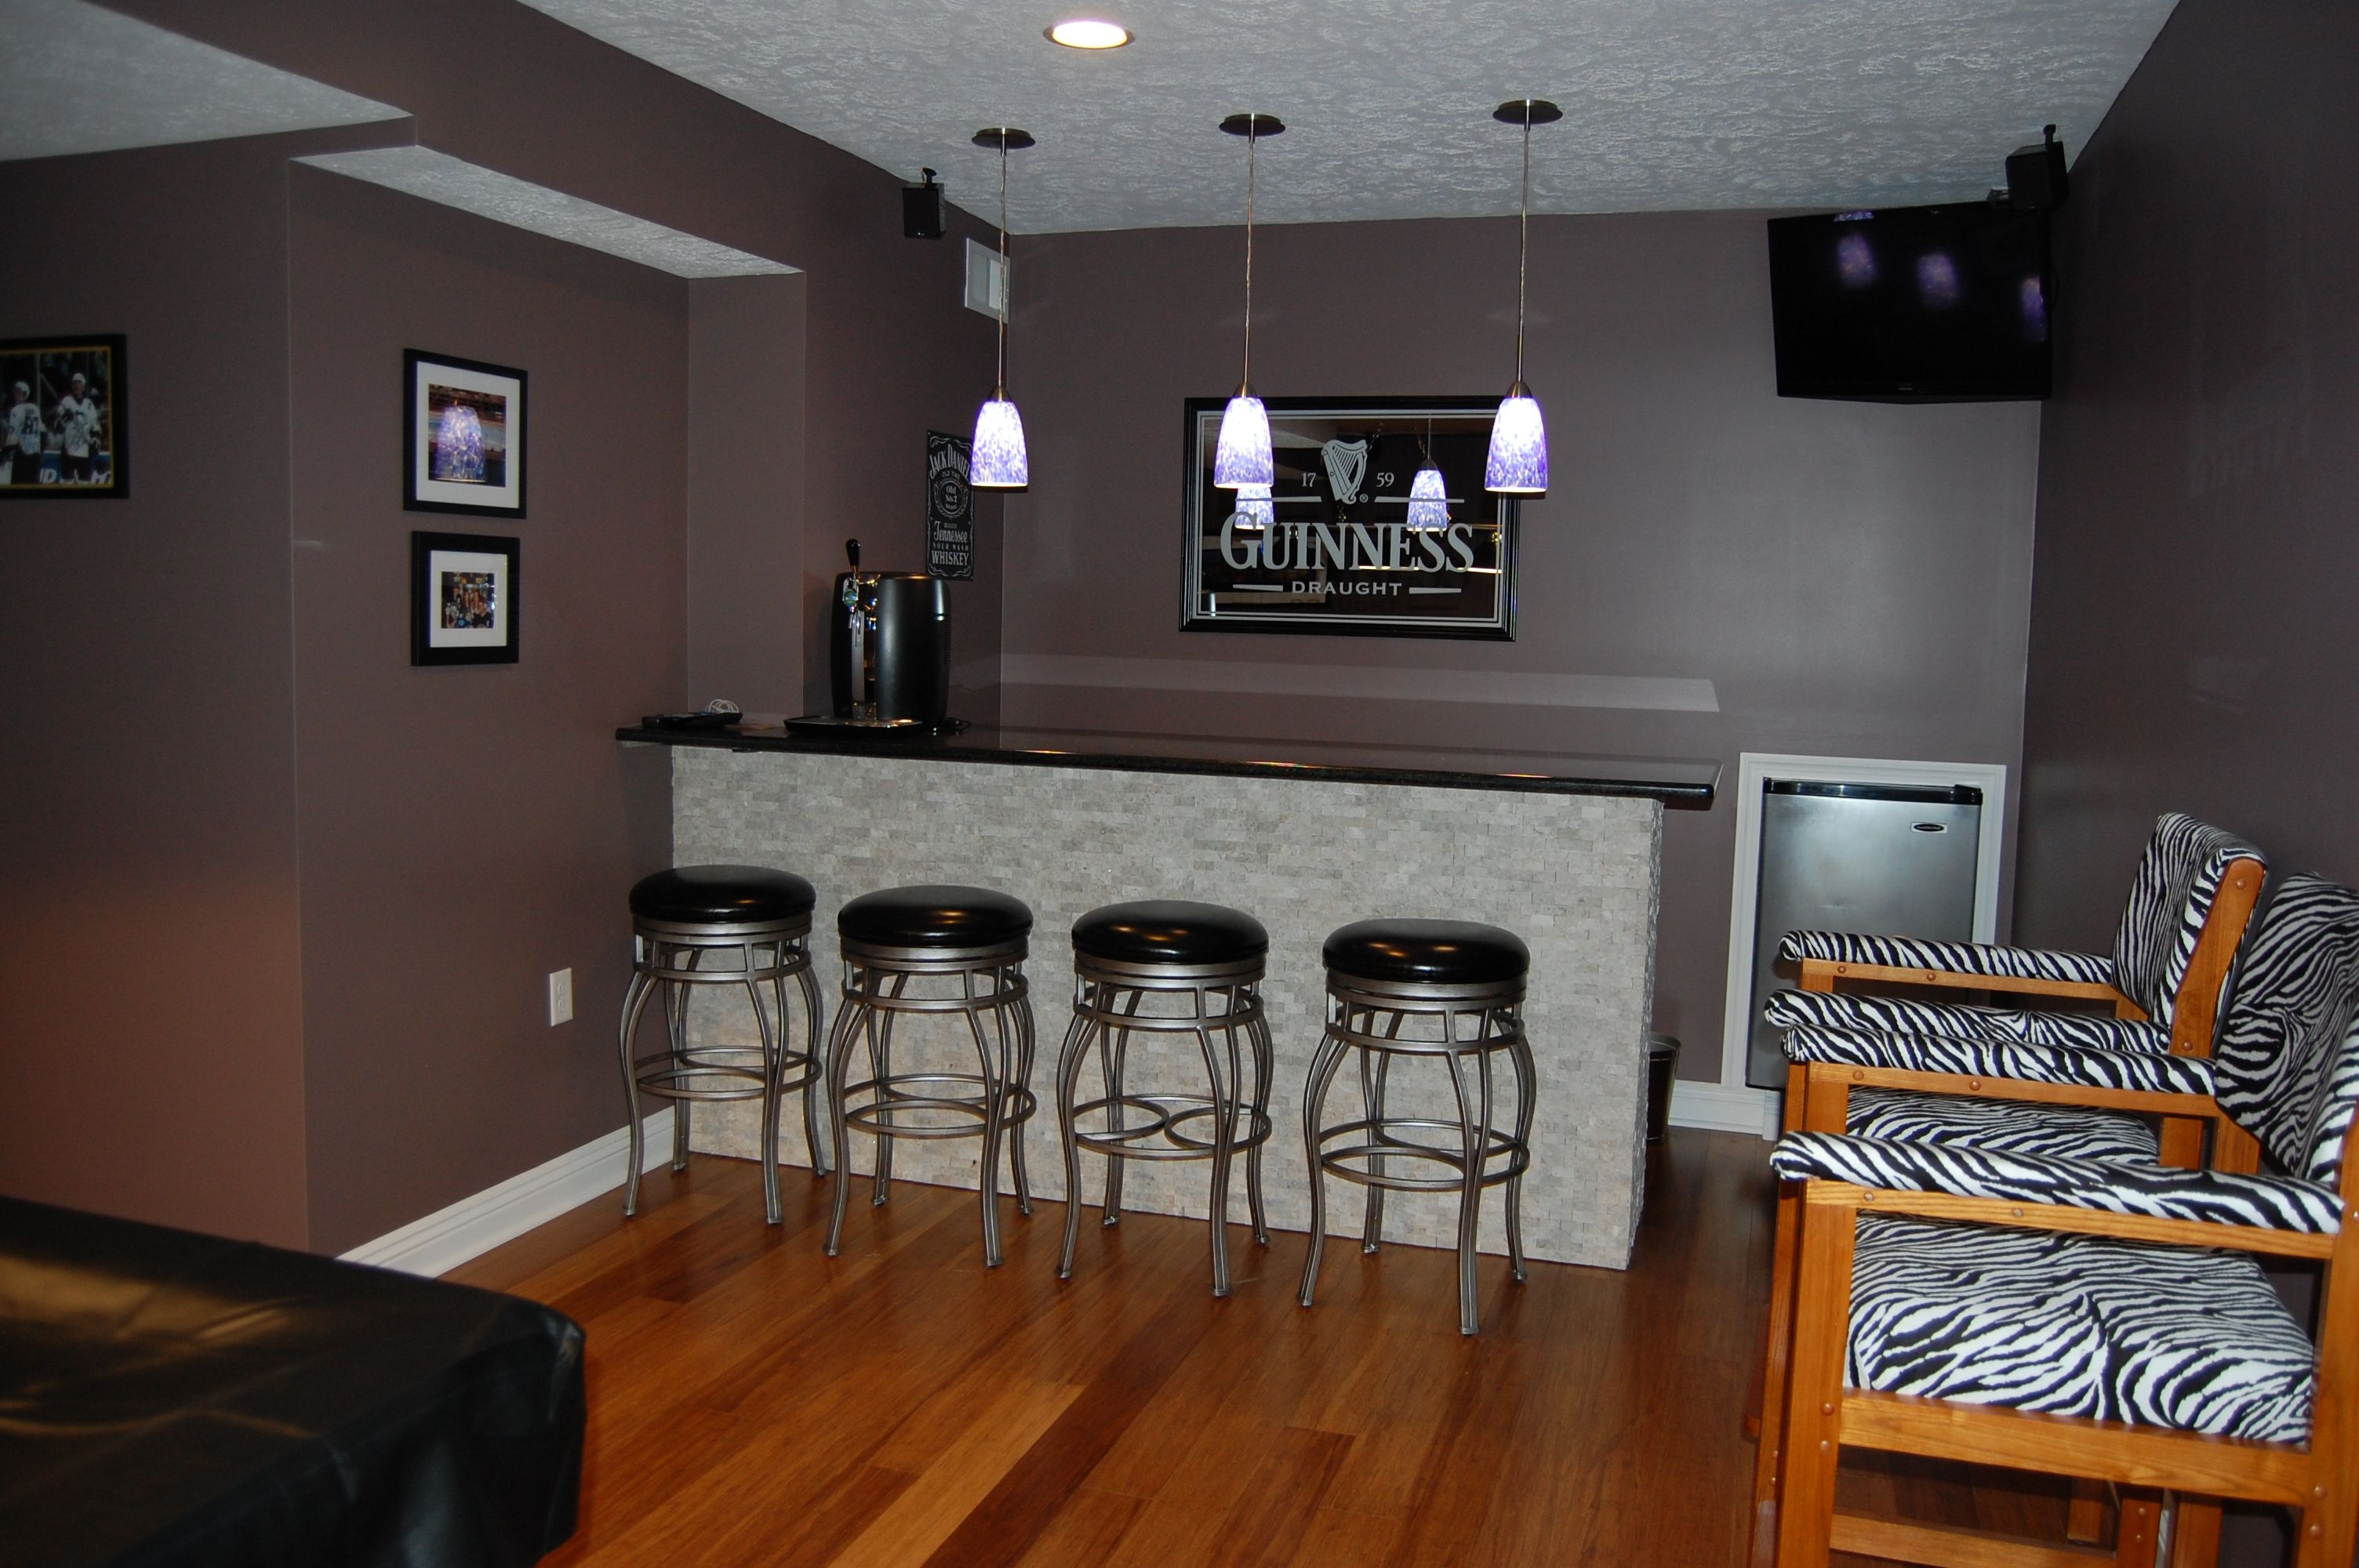 Our new sports bar gameroom remodel home projects i 39 d for New bar ideas